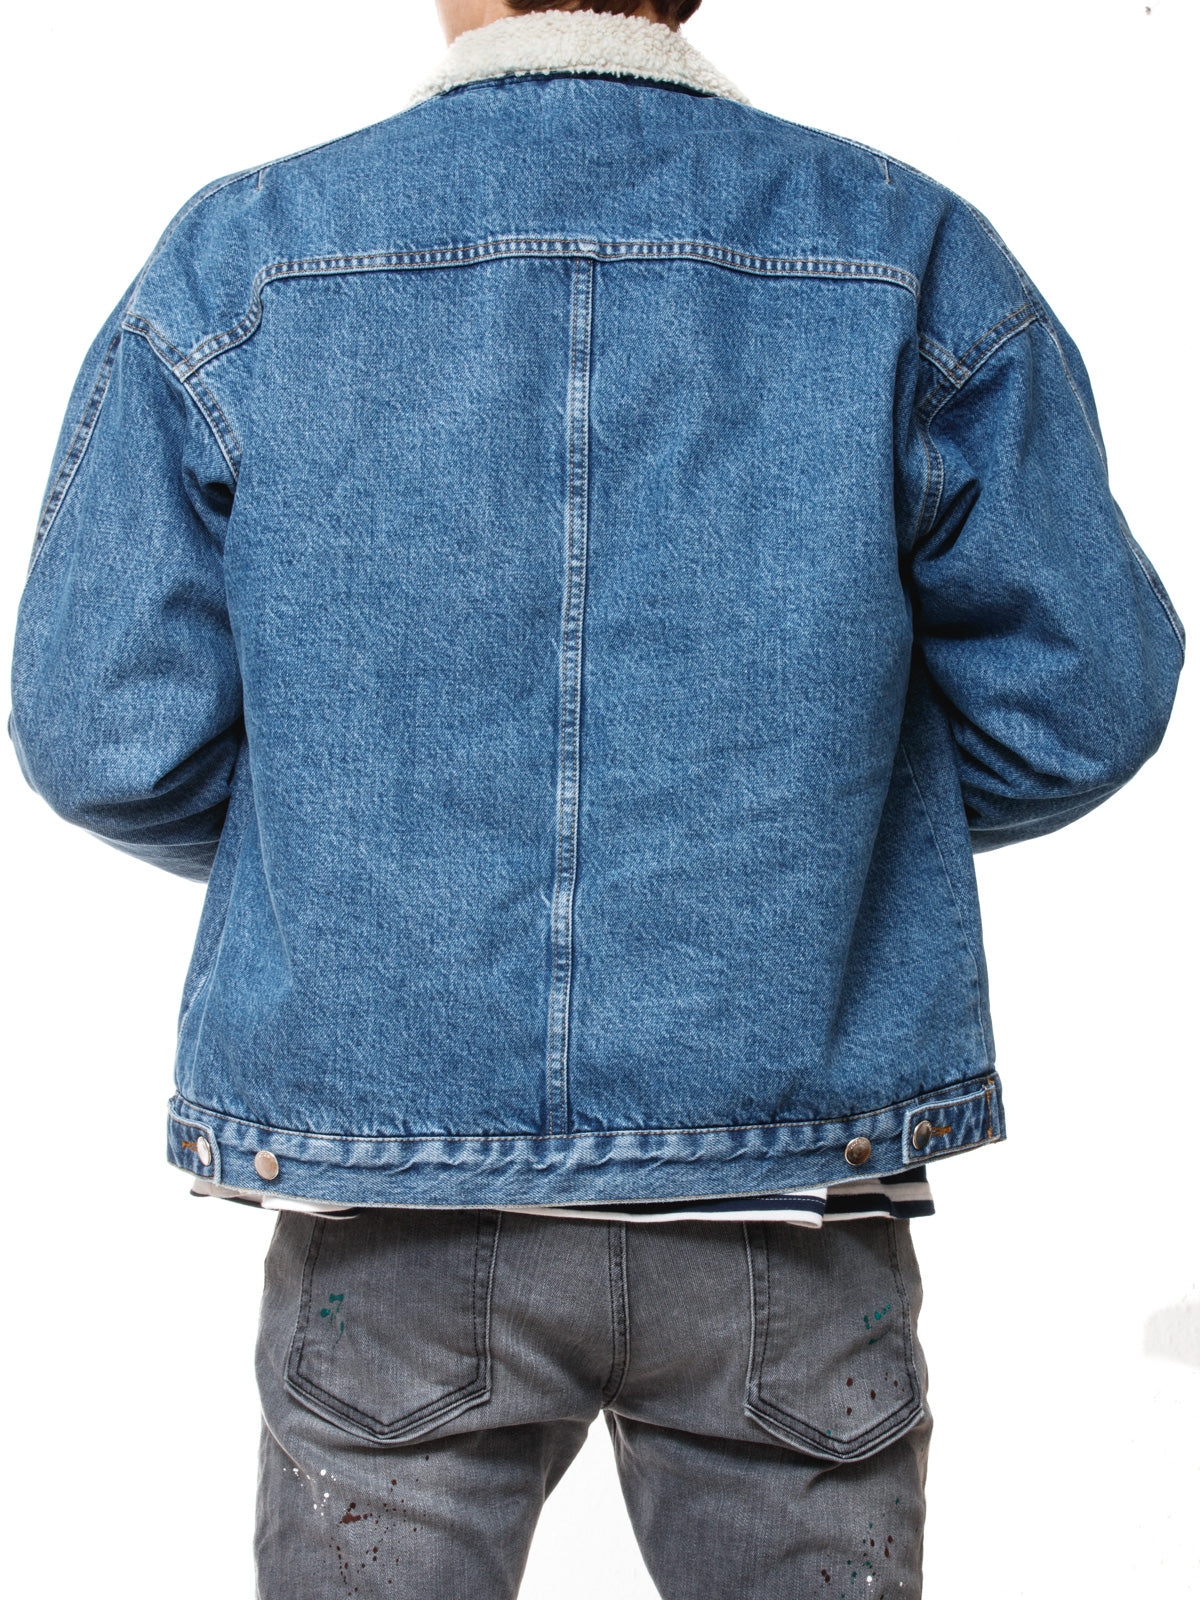 VINTAGE BLUE WASHED SHERPA TRUCKER JACKET